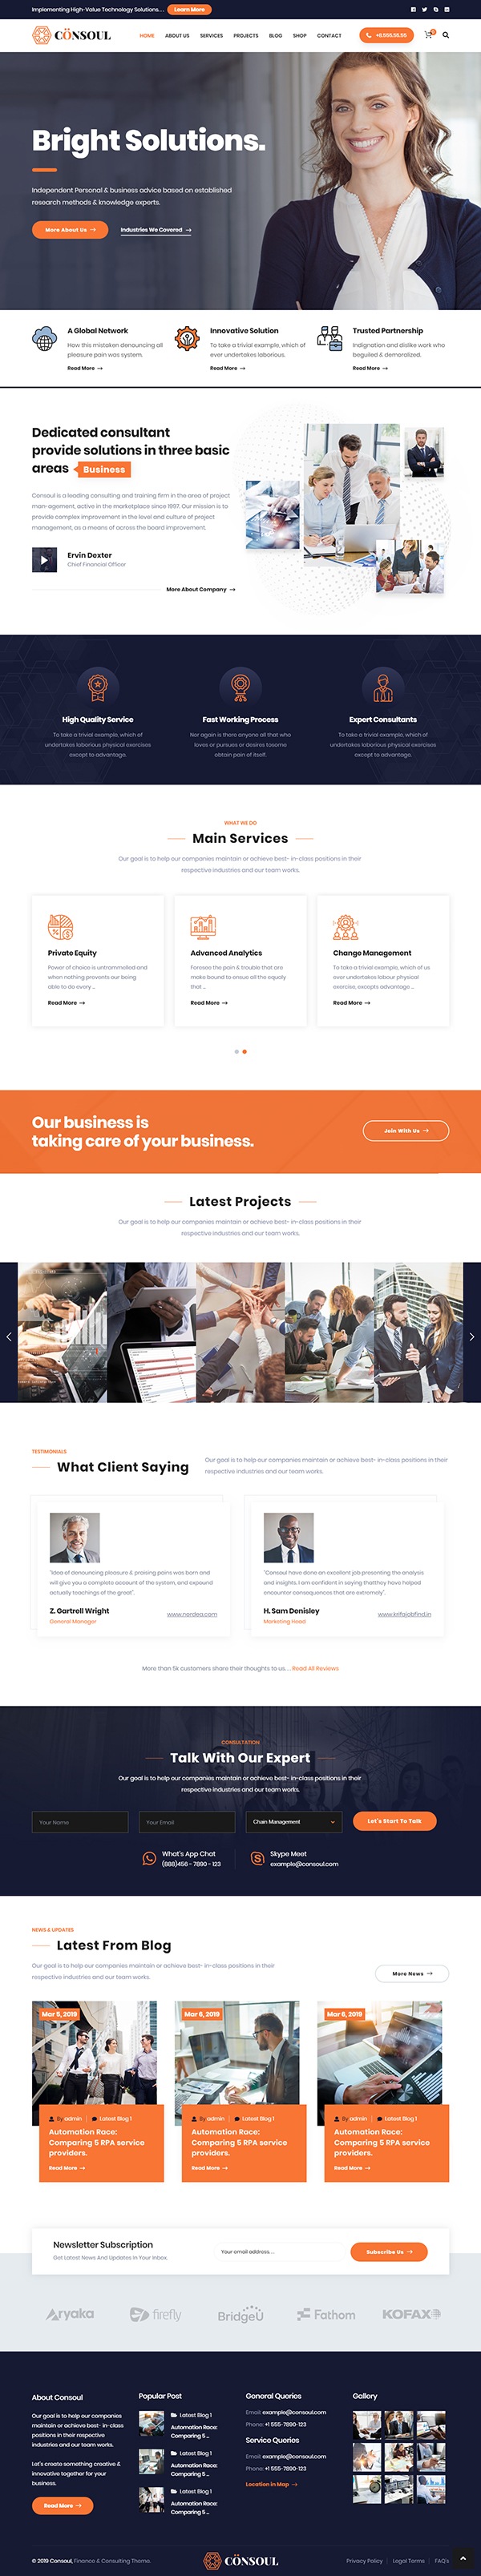 Consoul - Consulting Business WordPress Theme